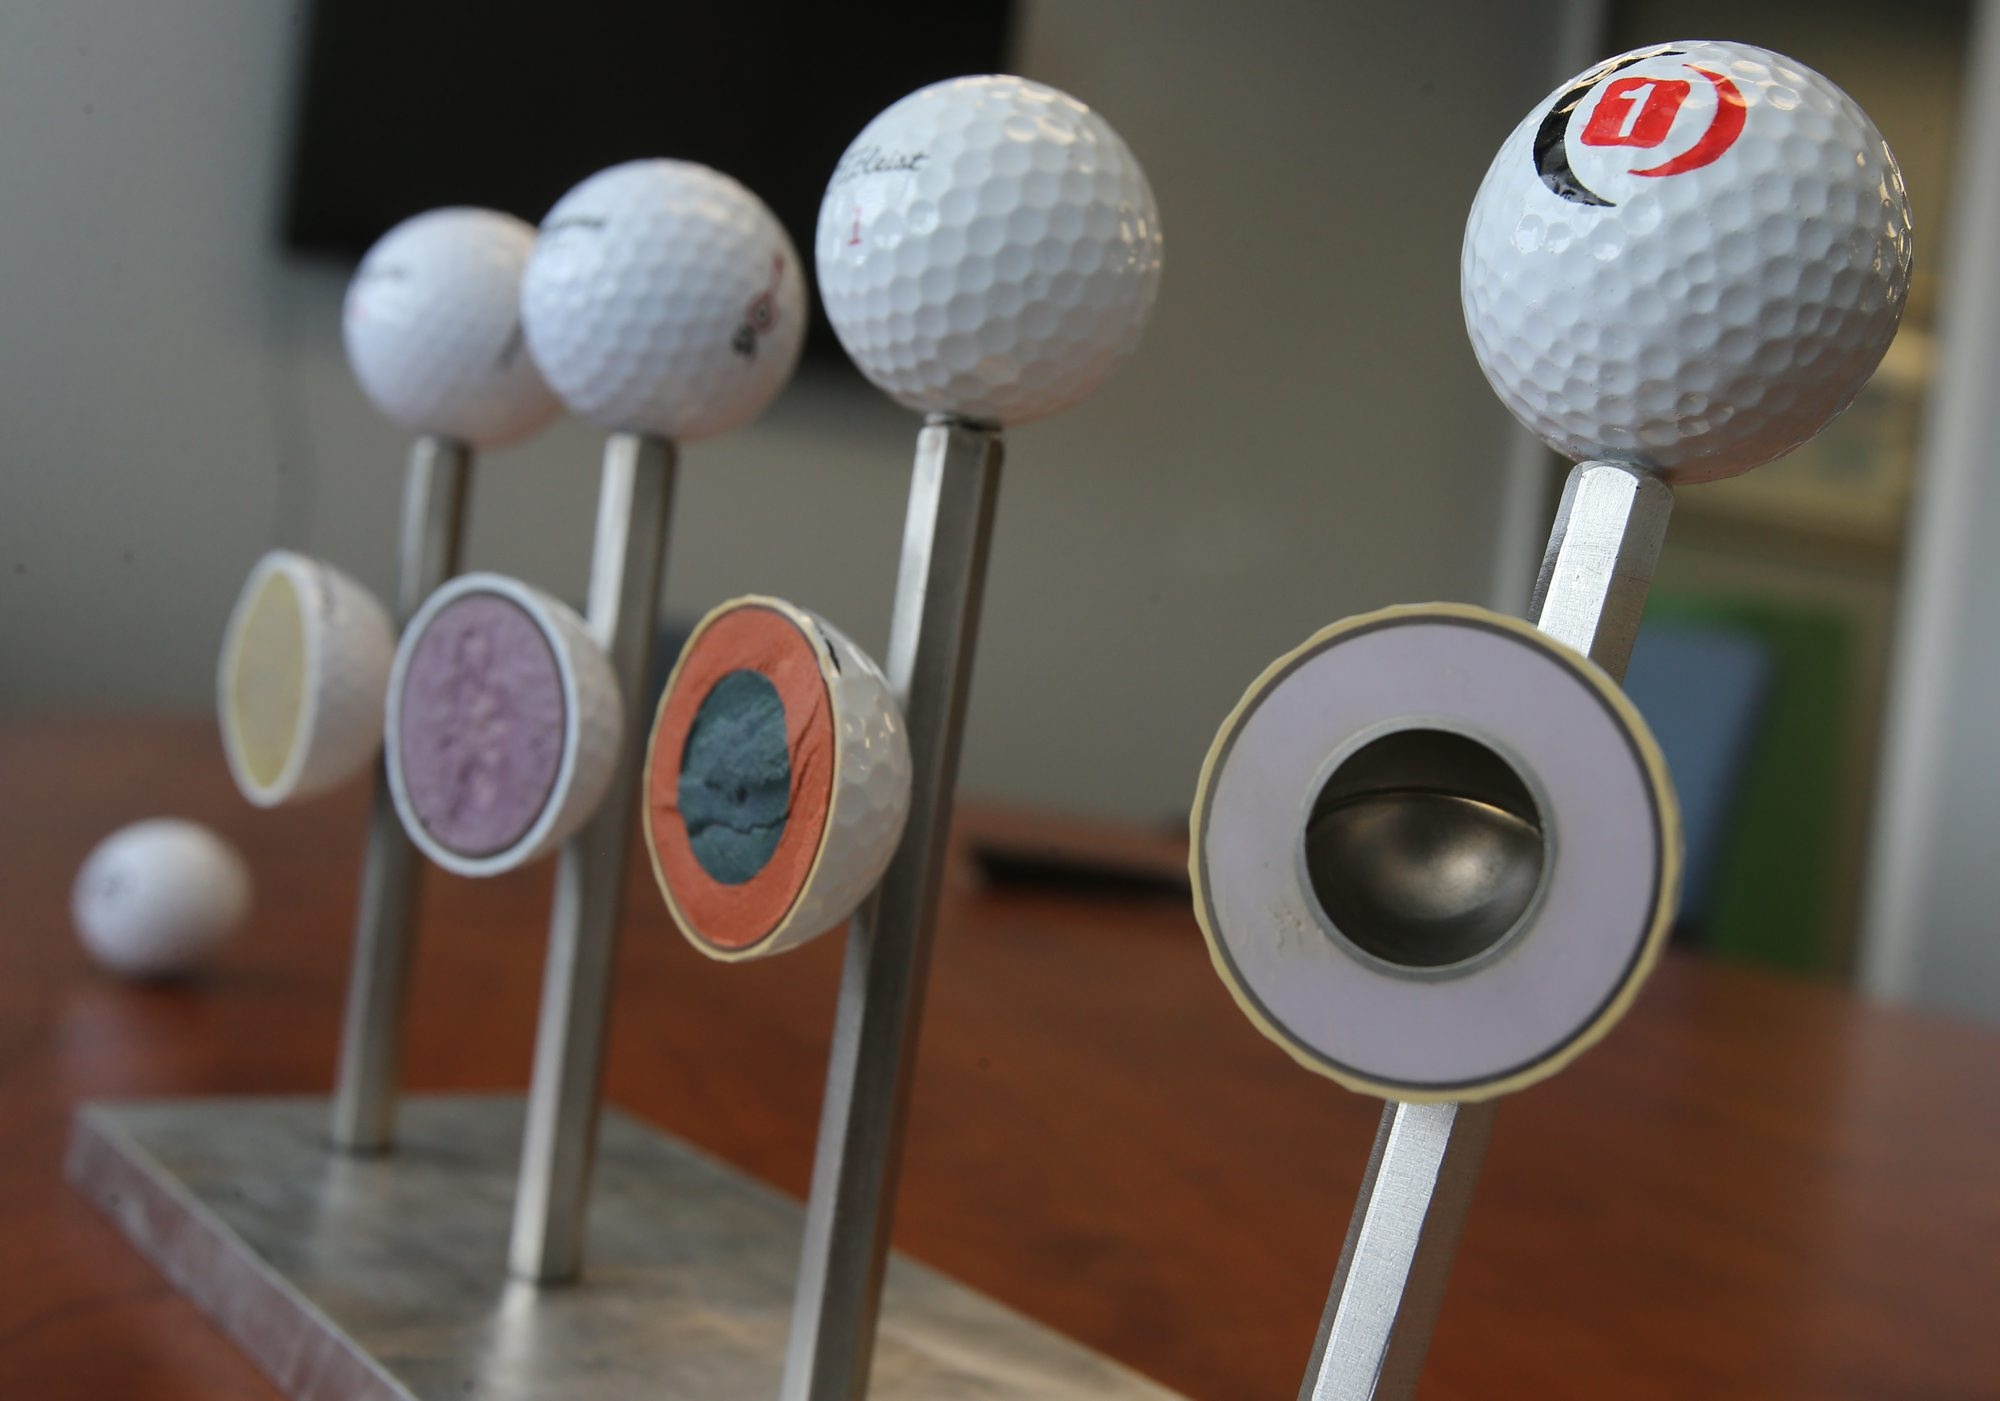 Buffalo-based OnCore Golf first made inroads into the ball market with its metal-core model.